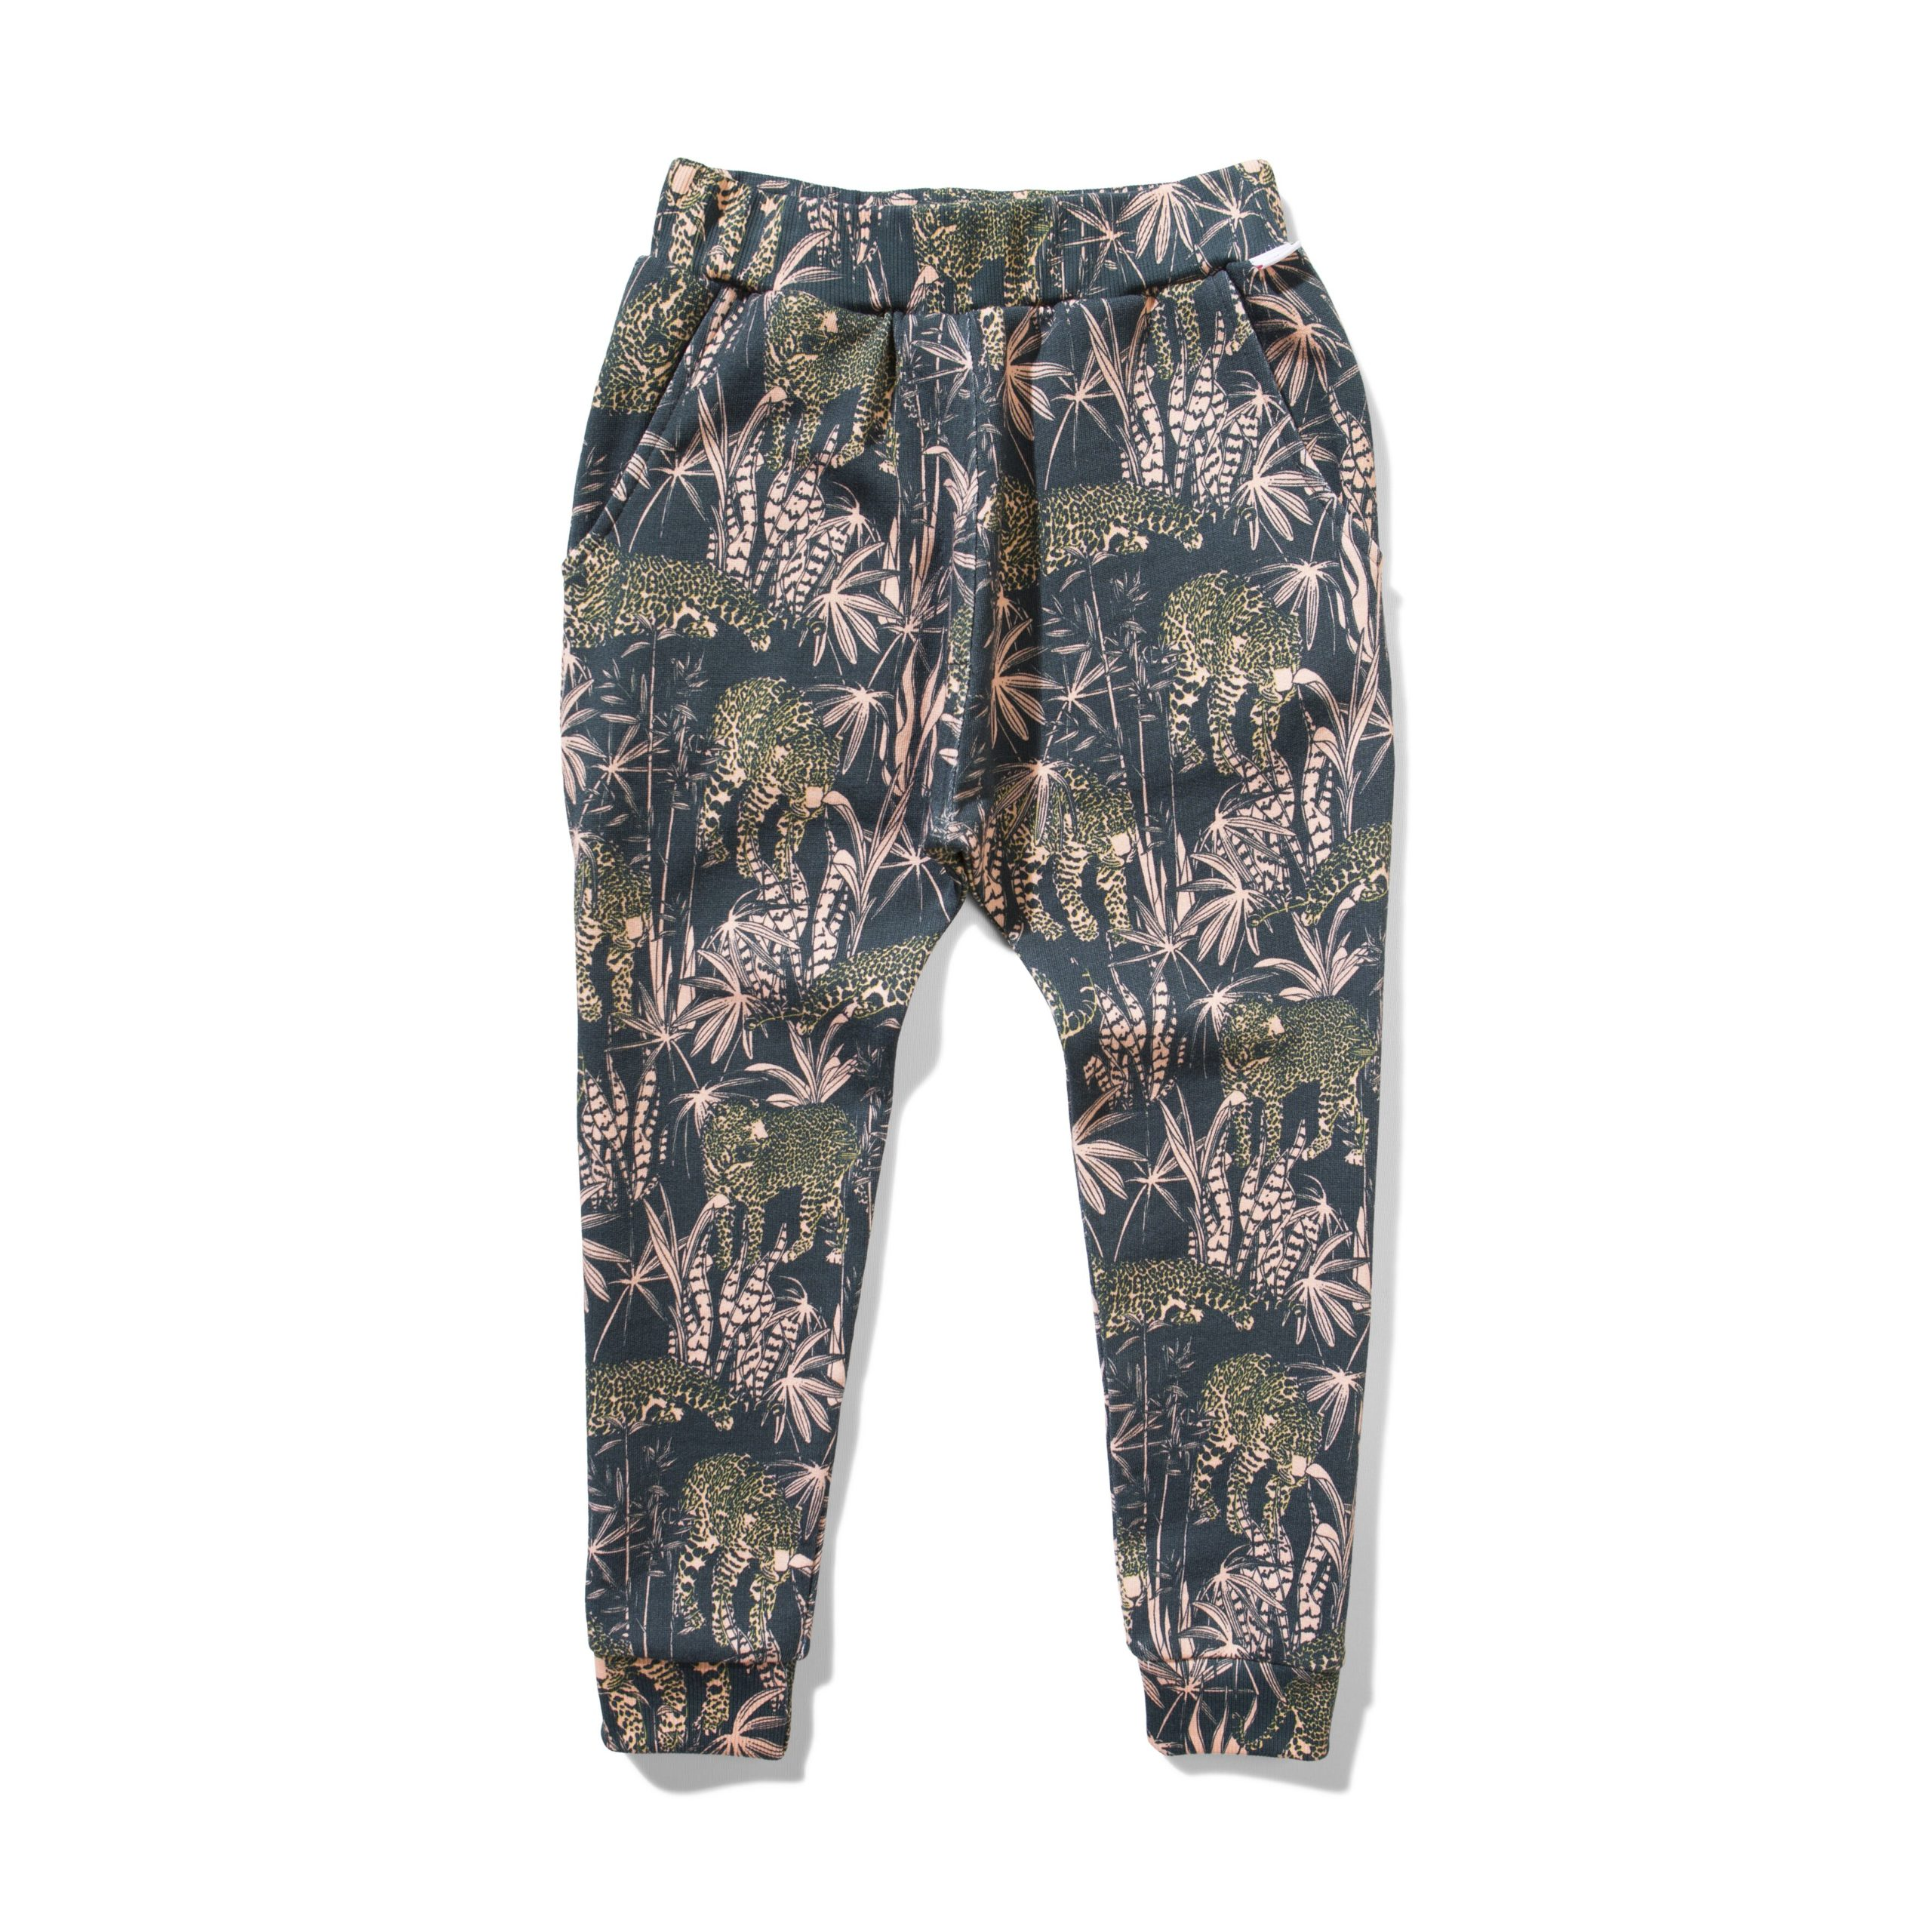 Missie Munster Jungle Pant (in the jungle)